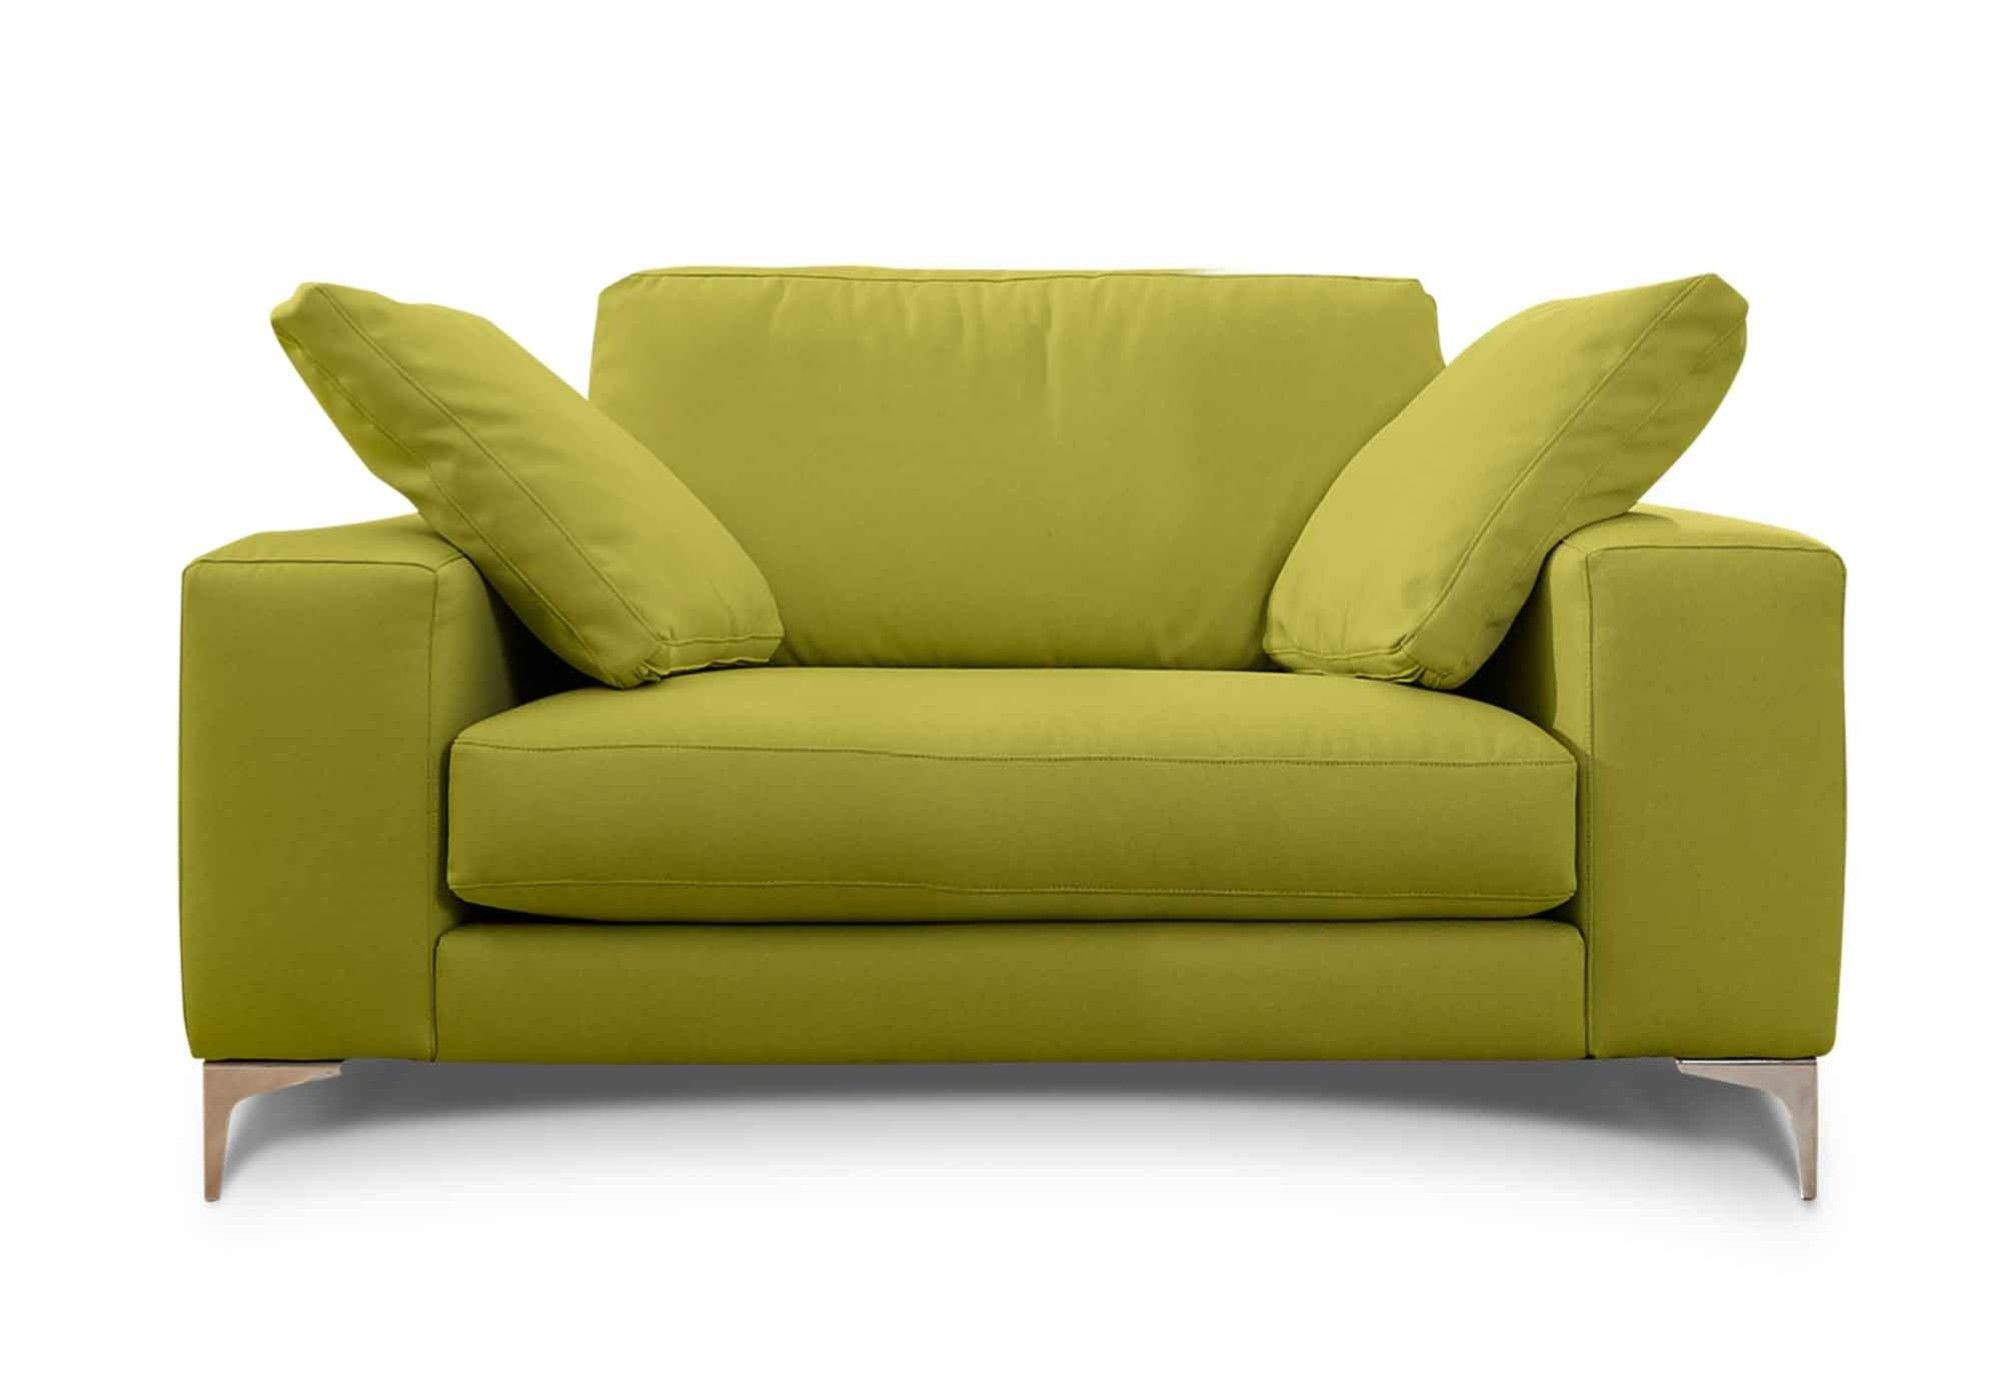 new small sofa chair photograph-Awesome Small sofa Chair Concept